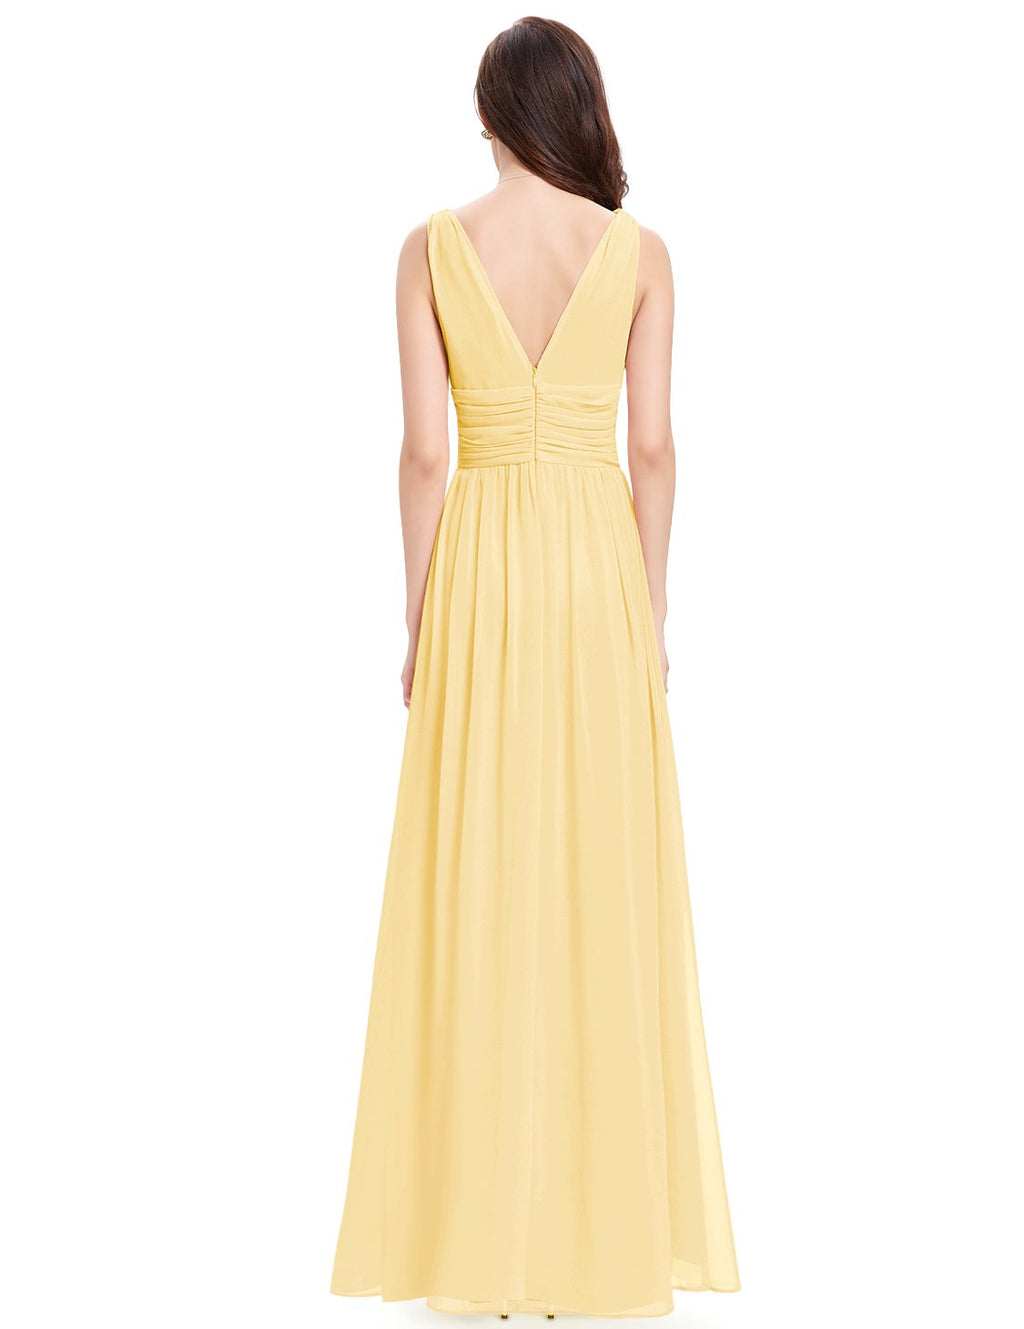 Chiffon Elegant Evening Gown Yellow